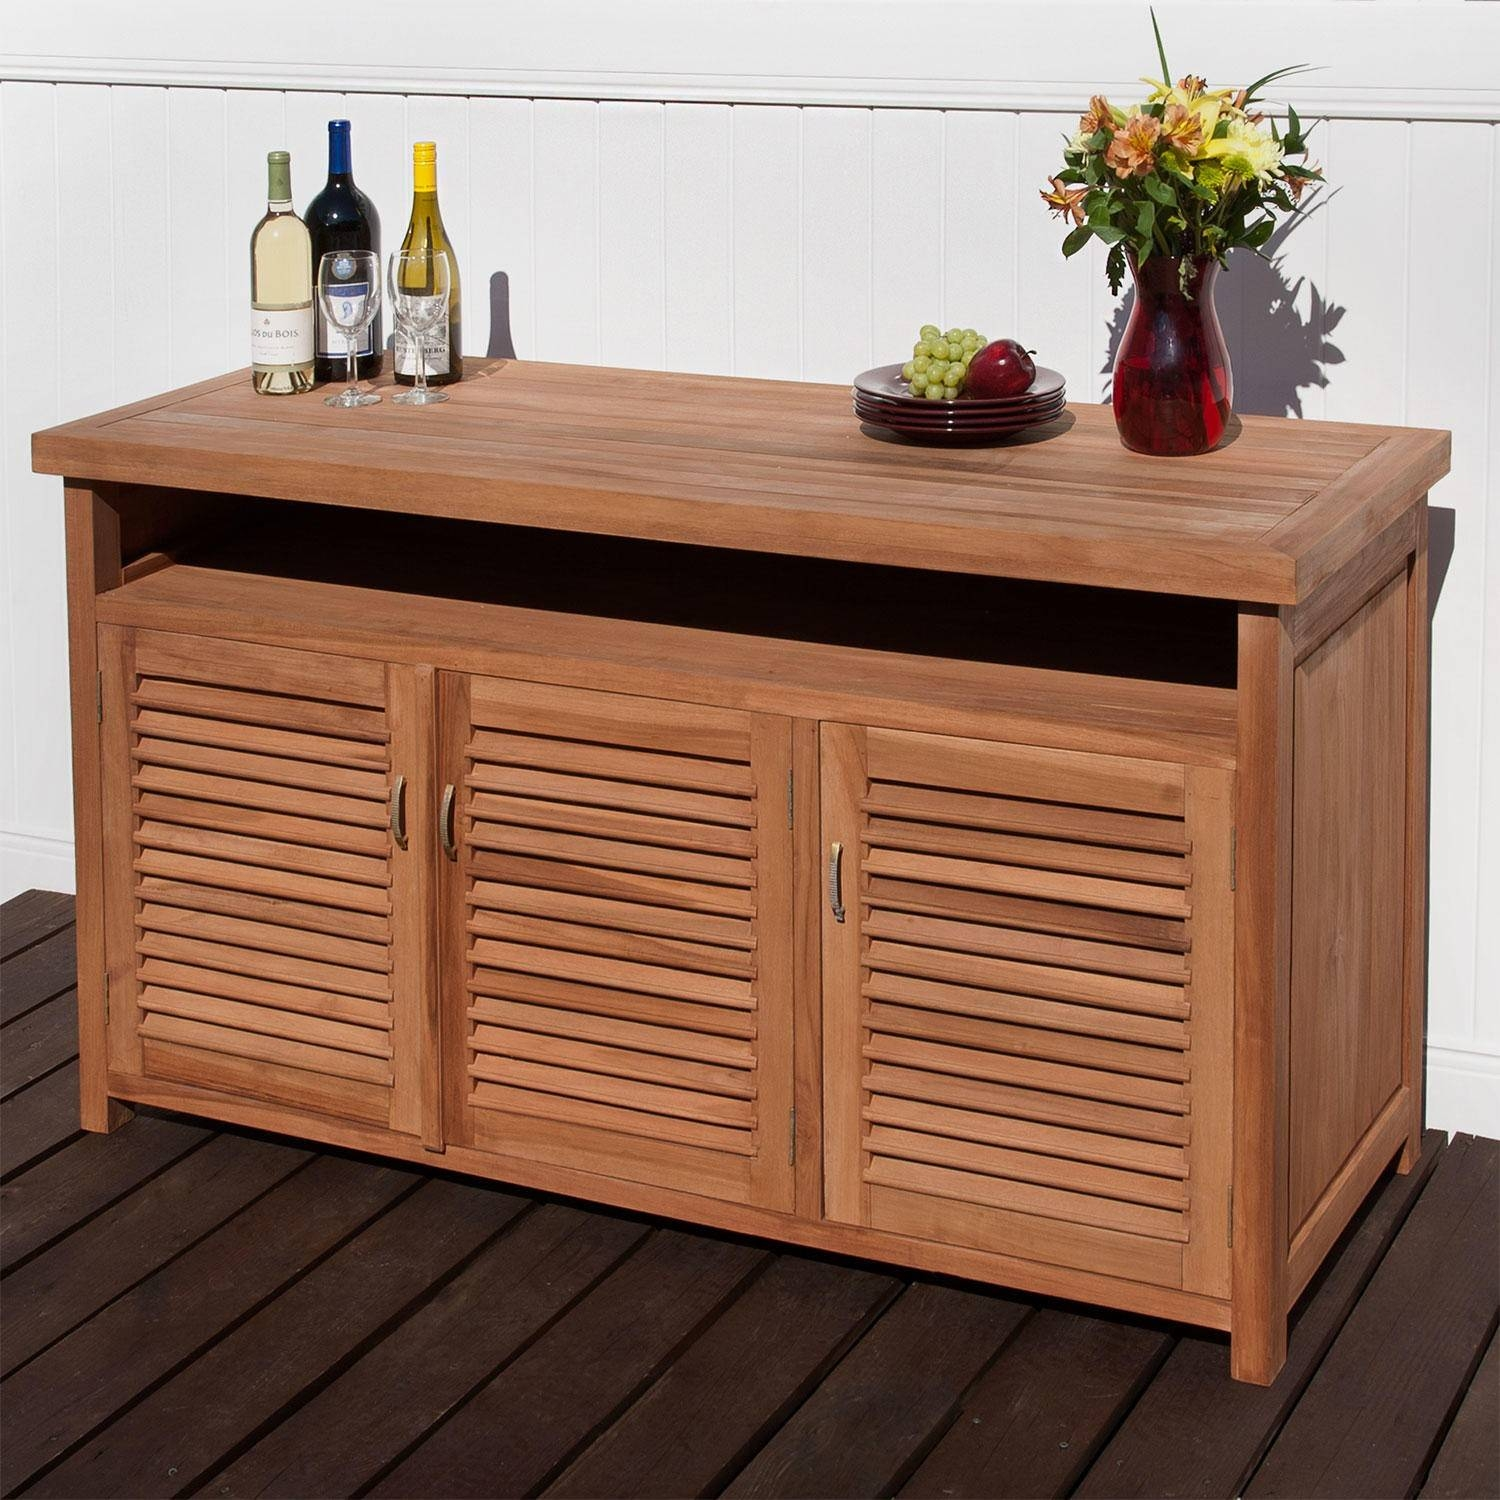 Popular Photo of Outdoor Sideboard Cabinets